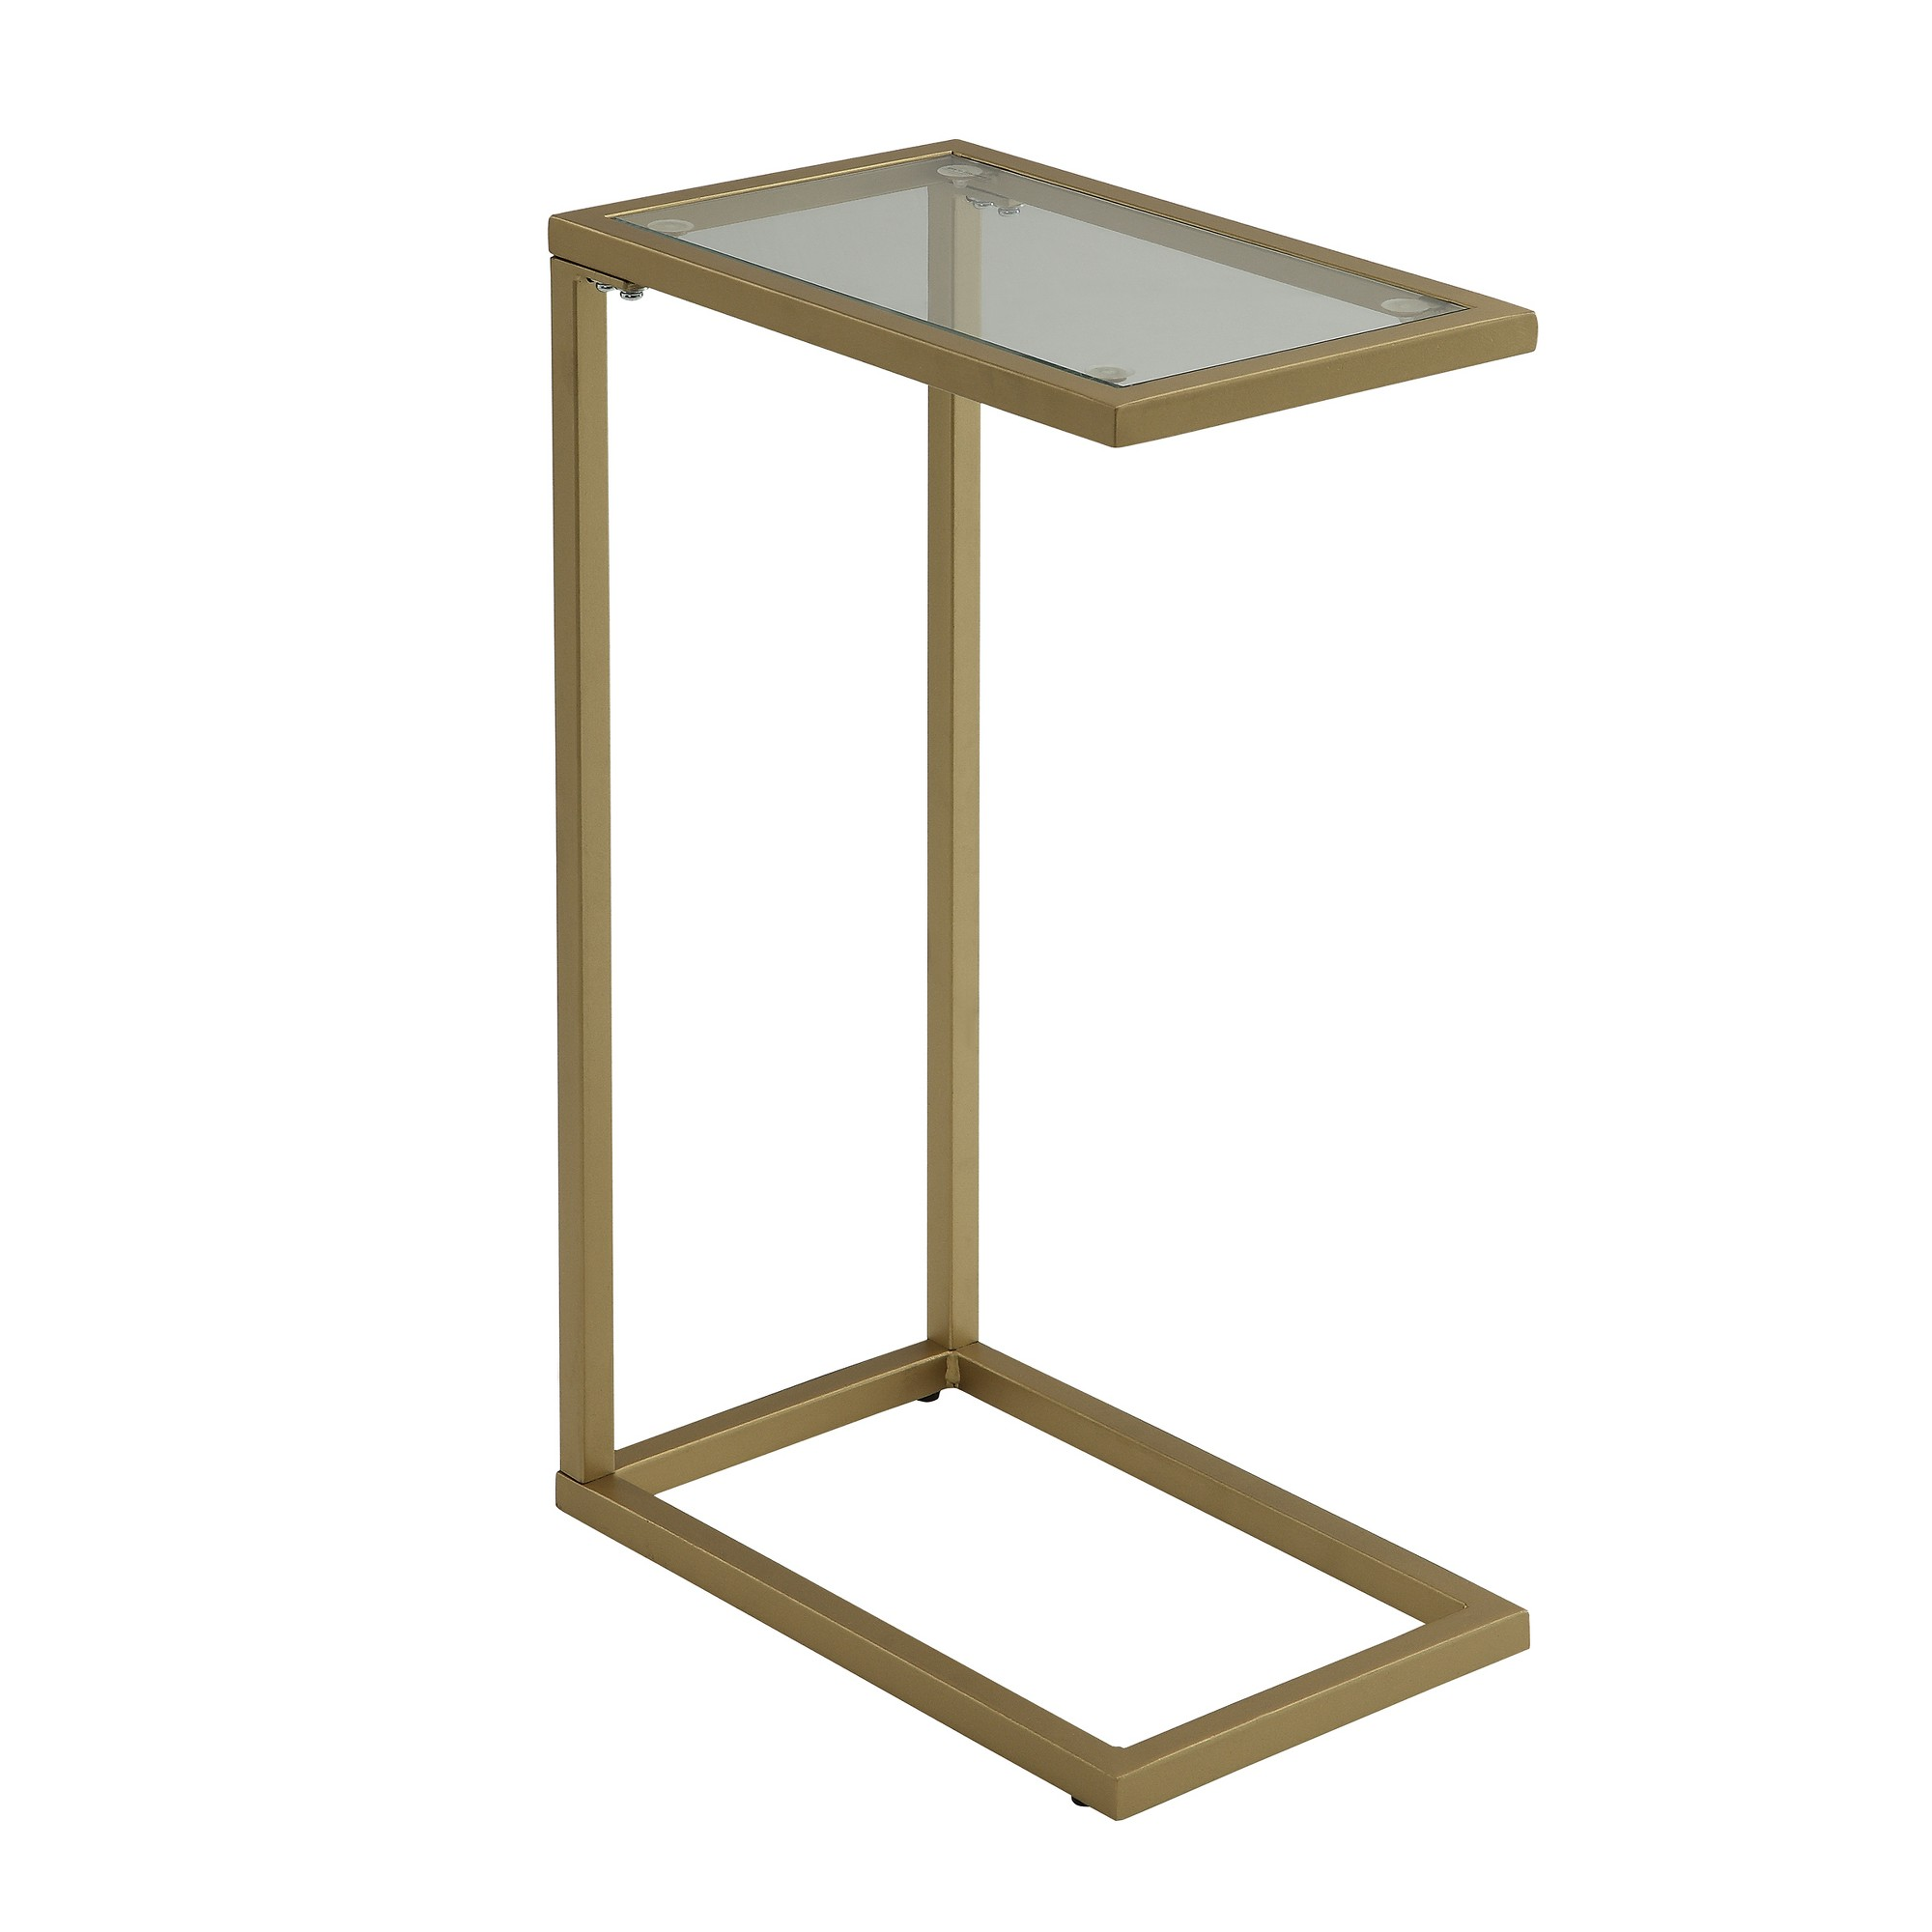 channing glass top accent table gold carolina chair umbrella pedestal square lucite black cherry end grey marble coffee large and metal outdoor drum tile wood floor transition